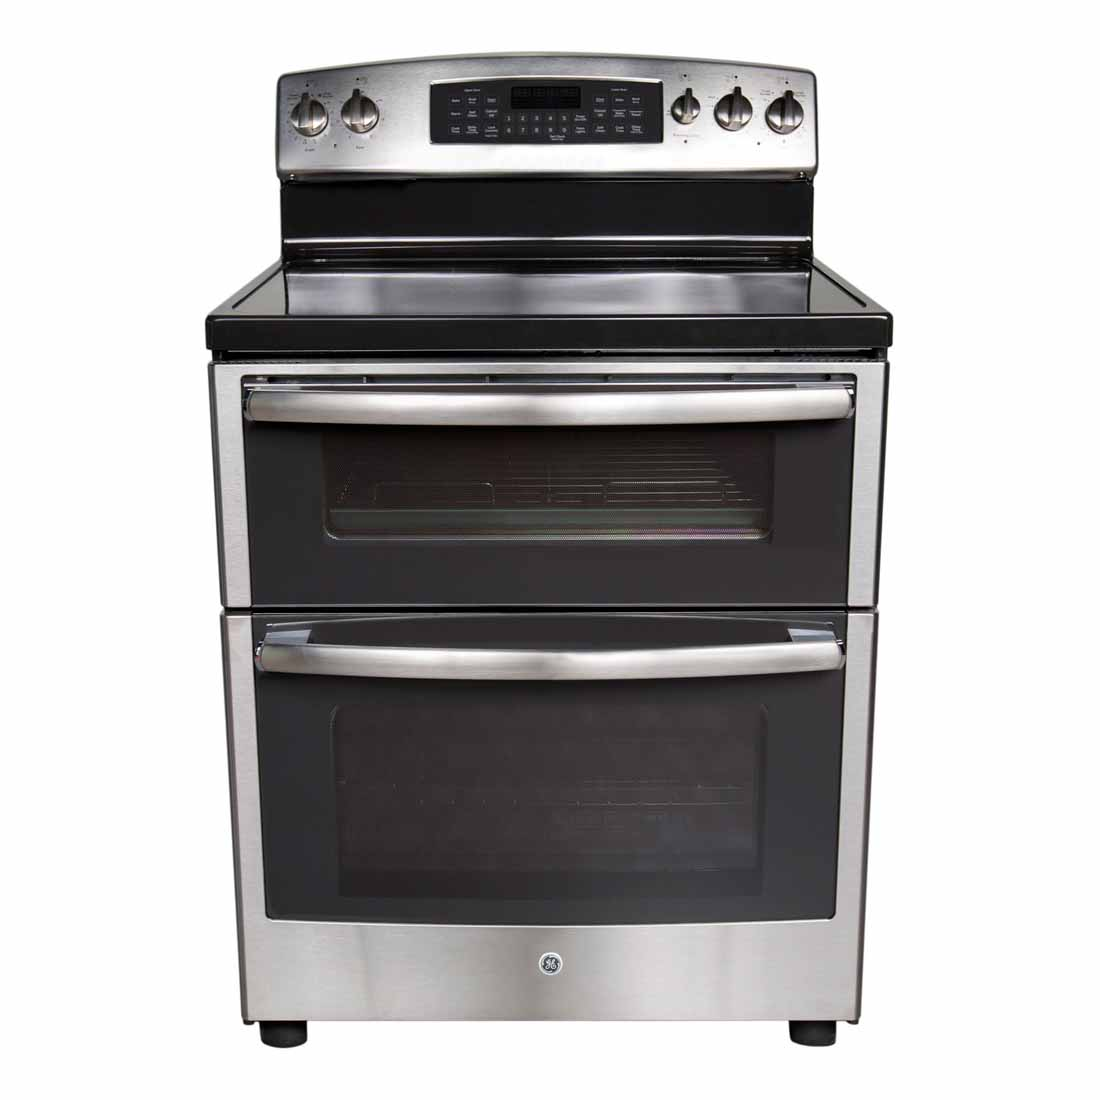 delightful Kitchen Appliance Brand Reviews #9: Electric Ranges